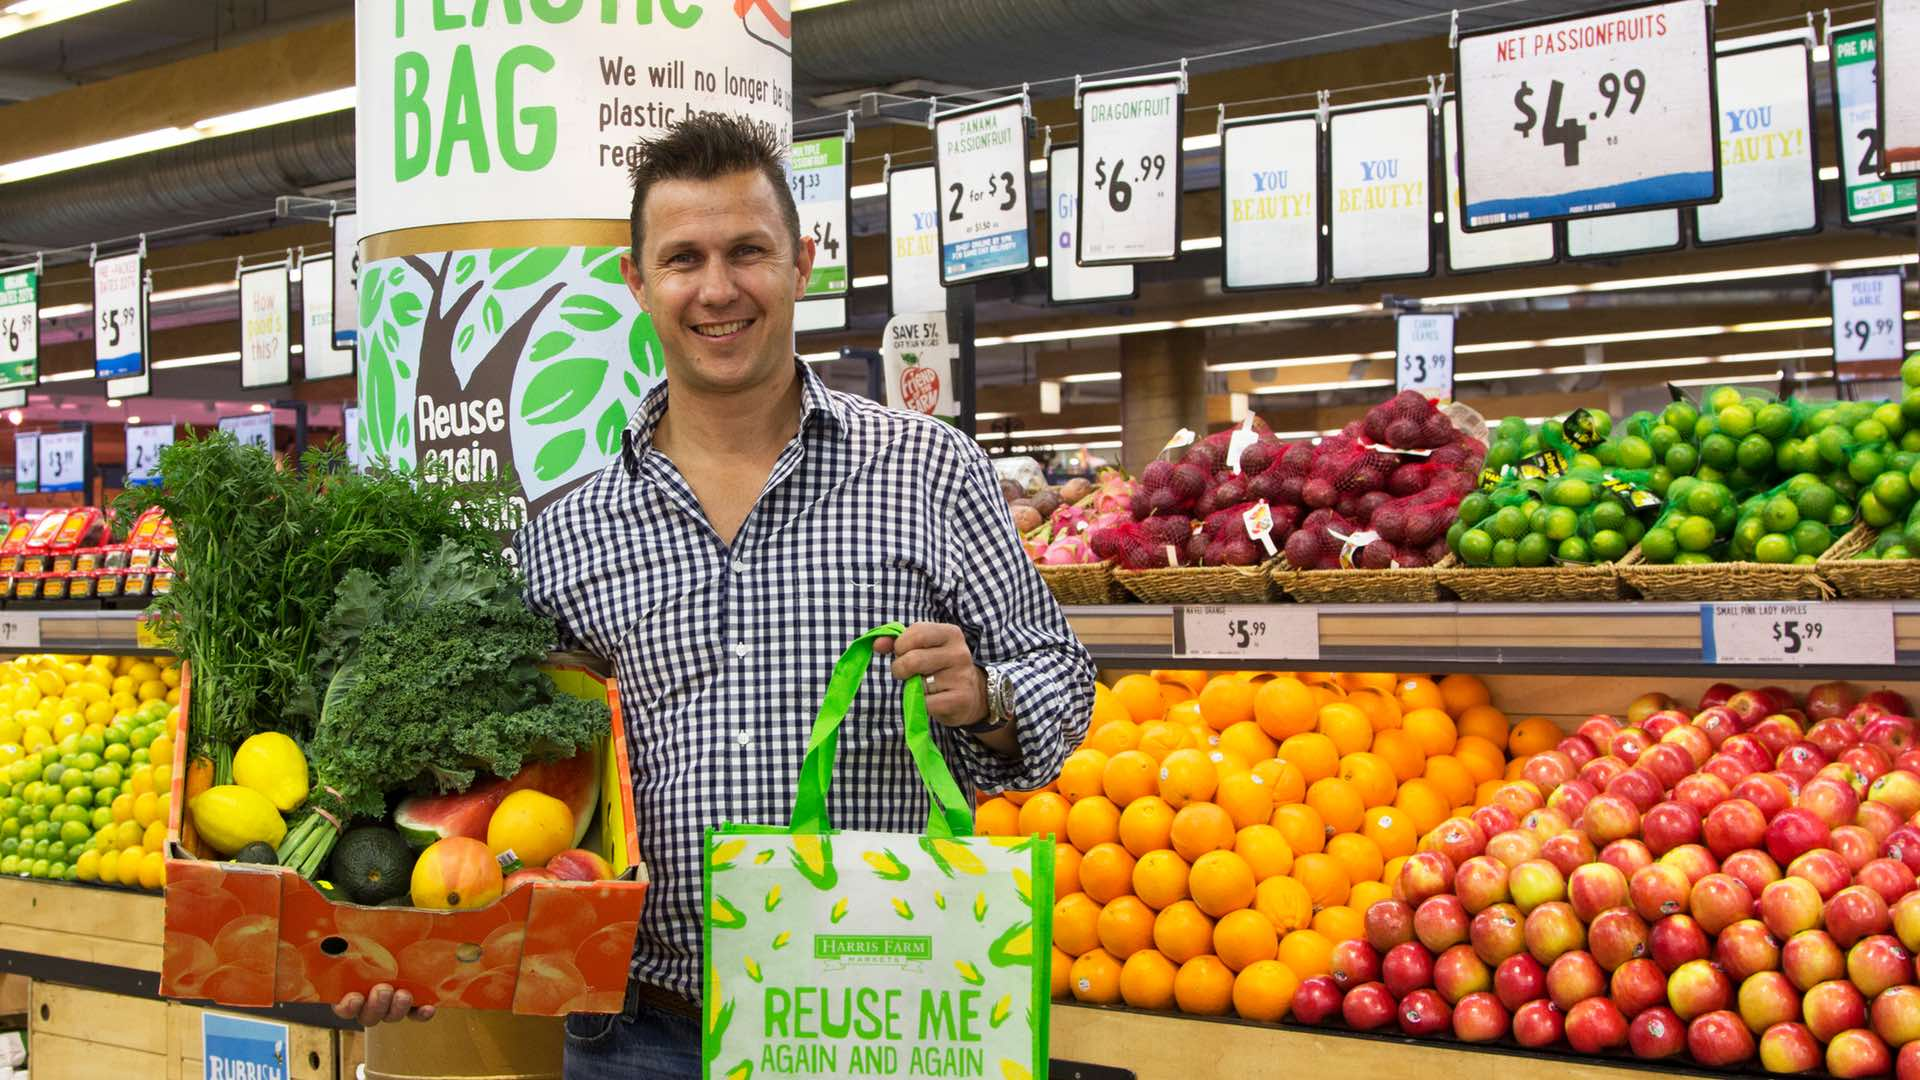 NSW's Harris Farm Markets No Longer Stocks Plastic Bags at the Checkout